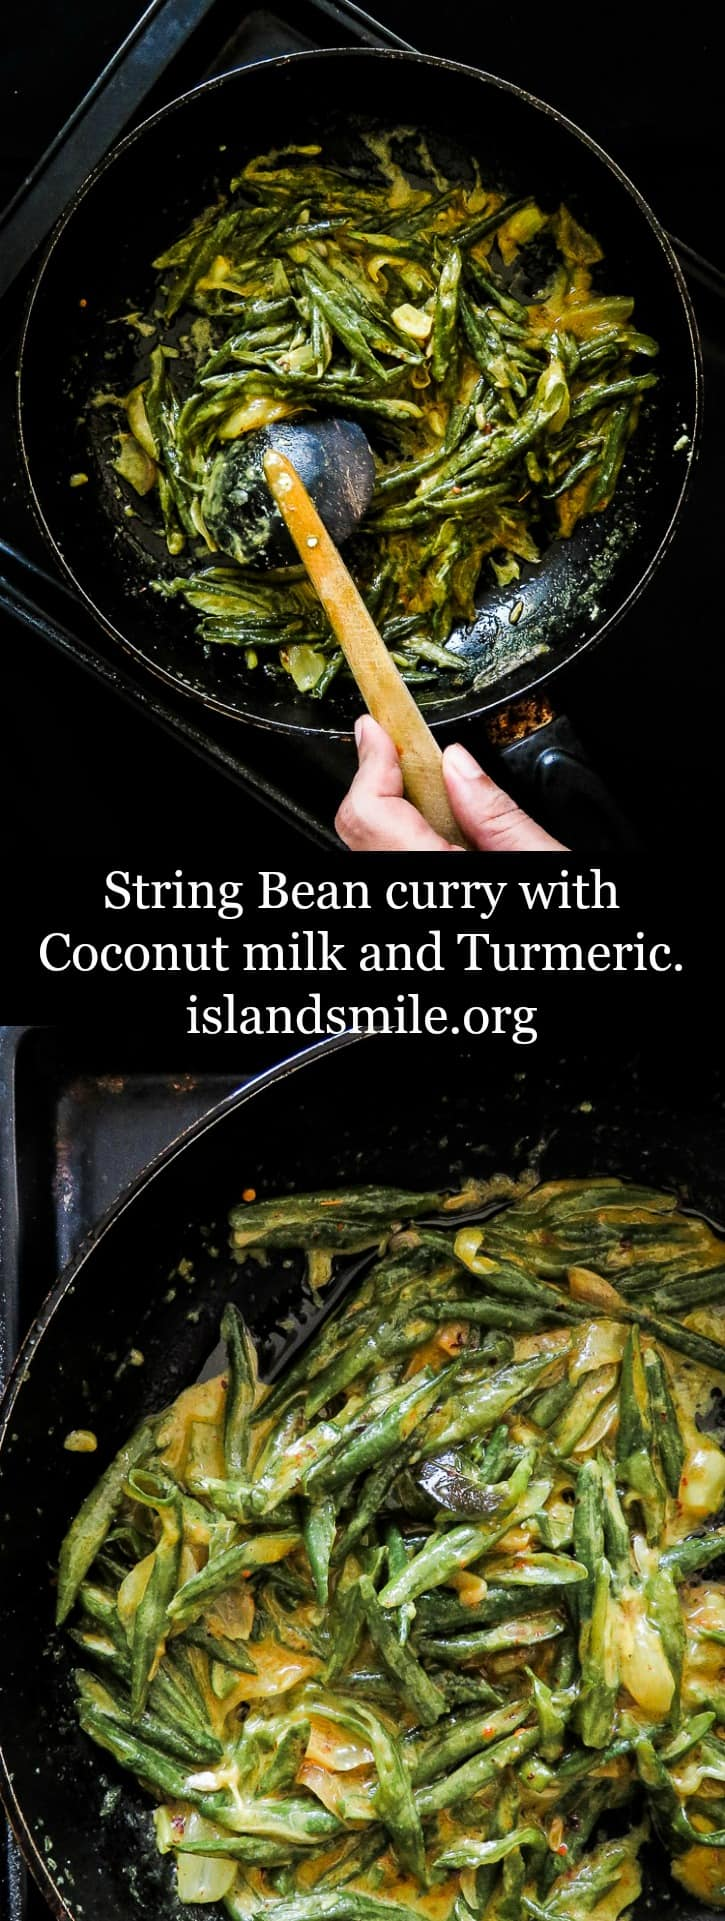 Sri Lankan string bean curry- a vegetarian, coconut milk based dish without the usual heat. healthy, Low-carb, gluten-free, vegan, try this bean curry for a side dish. #bean #curry #vegan #vegetarian #easy #stovetop #srilankan #string bean #coconutmilk #turmeric